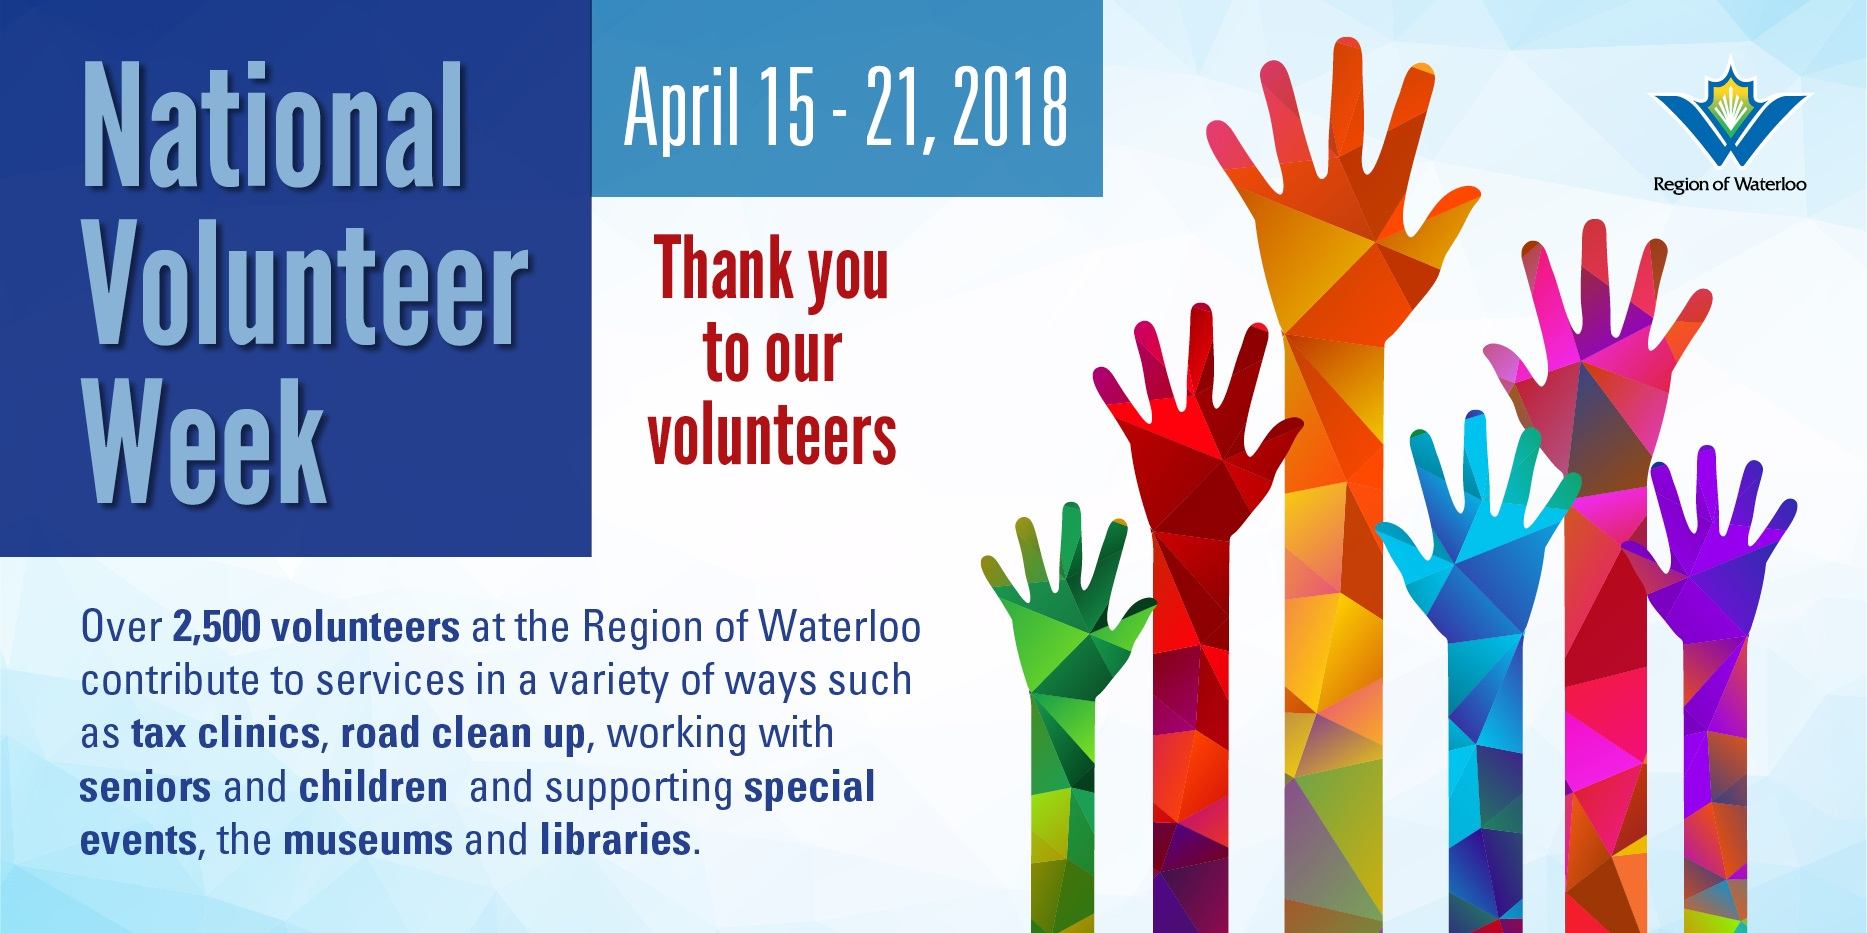 National volunteer week April 15 - 21, 2018. Thank you to over 2,500 volunteers at the Region.